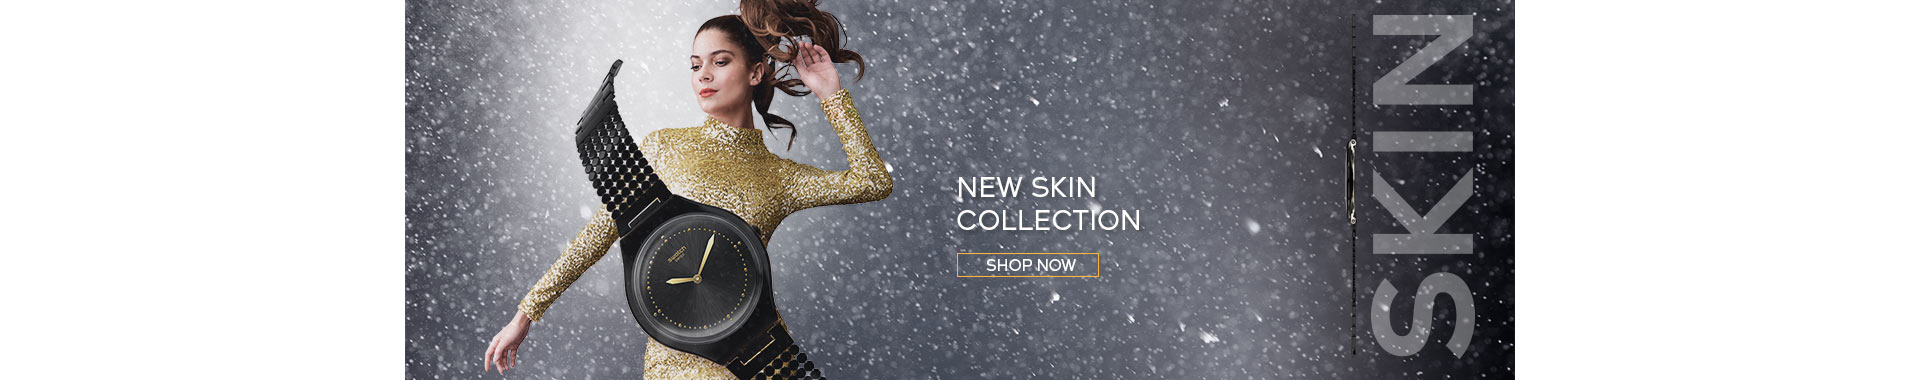 Banner New Skin Collection